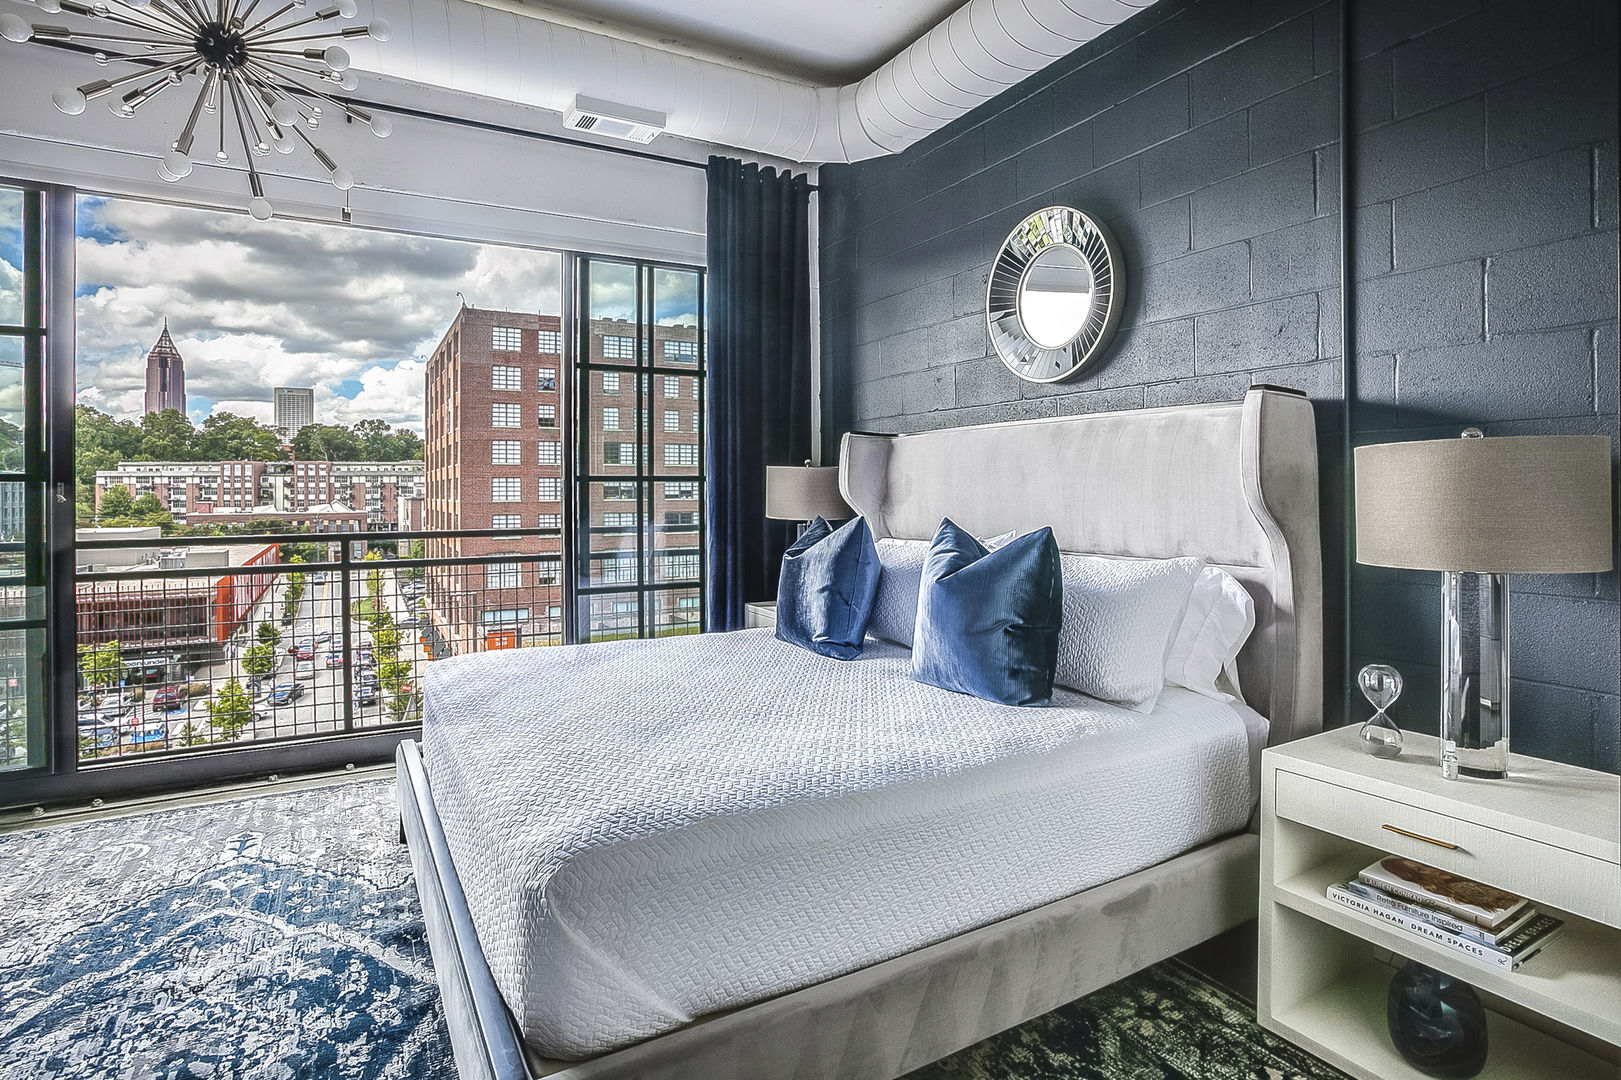 Sleeping area with a large bed, two nightstands, and an open window overlooking the city.